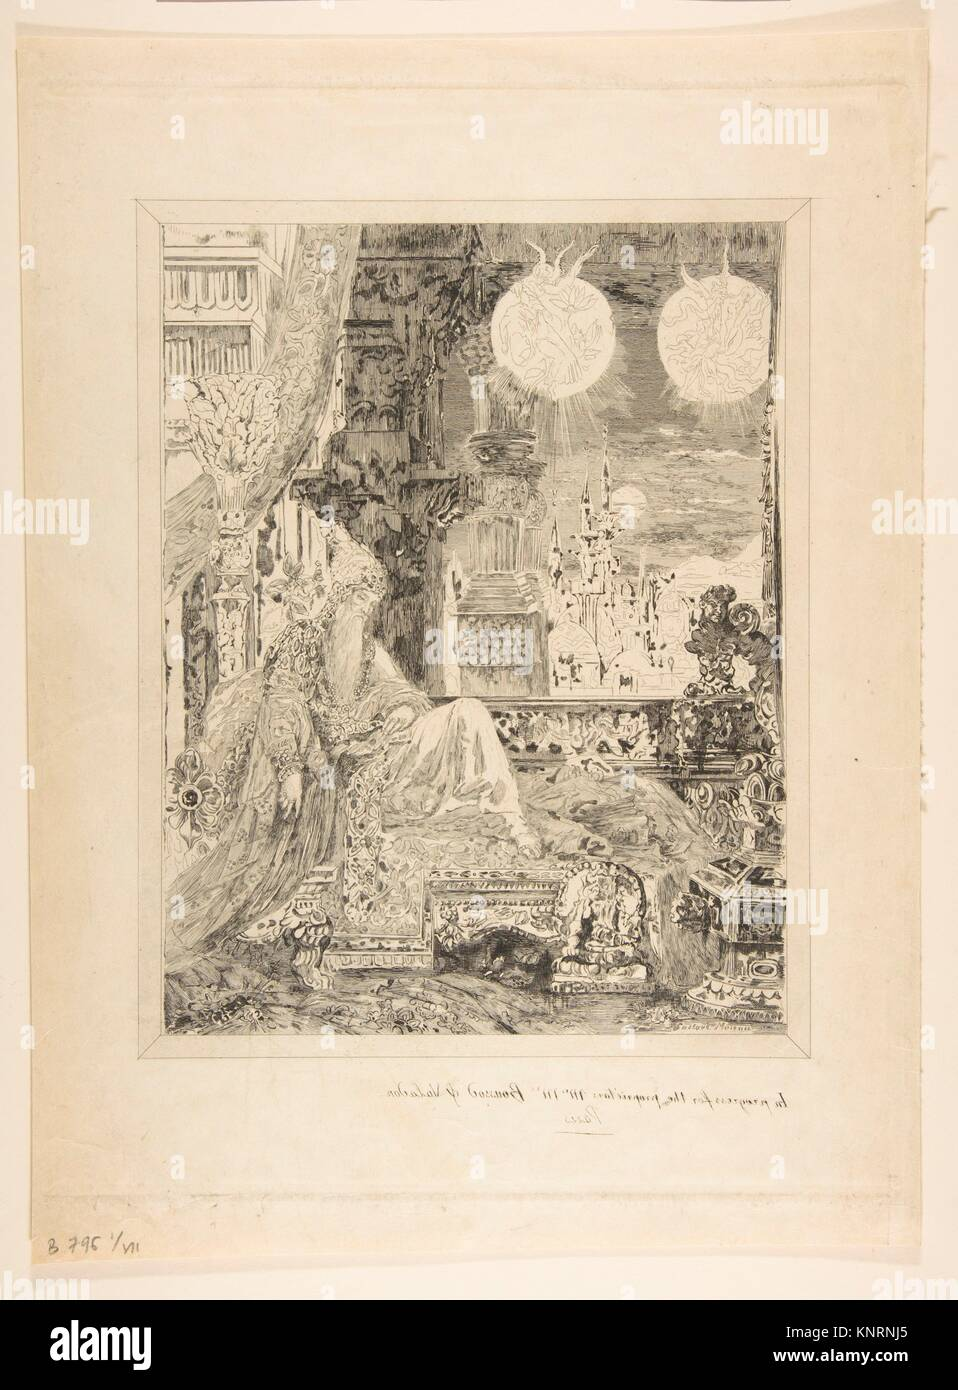 The Dream of an Inhabitant of Mongolia (La Fontaine Fables, Book XI, Fable IV), after Moreau. Artist: Félix - Stock Image